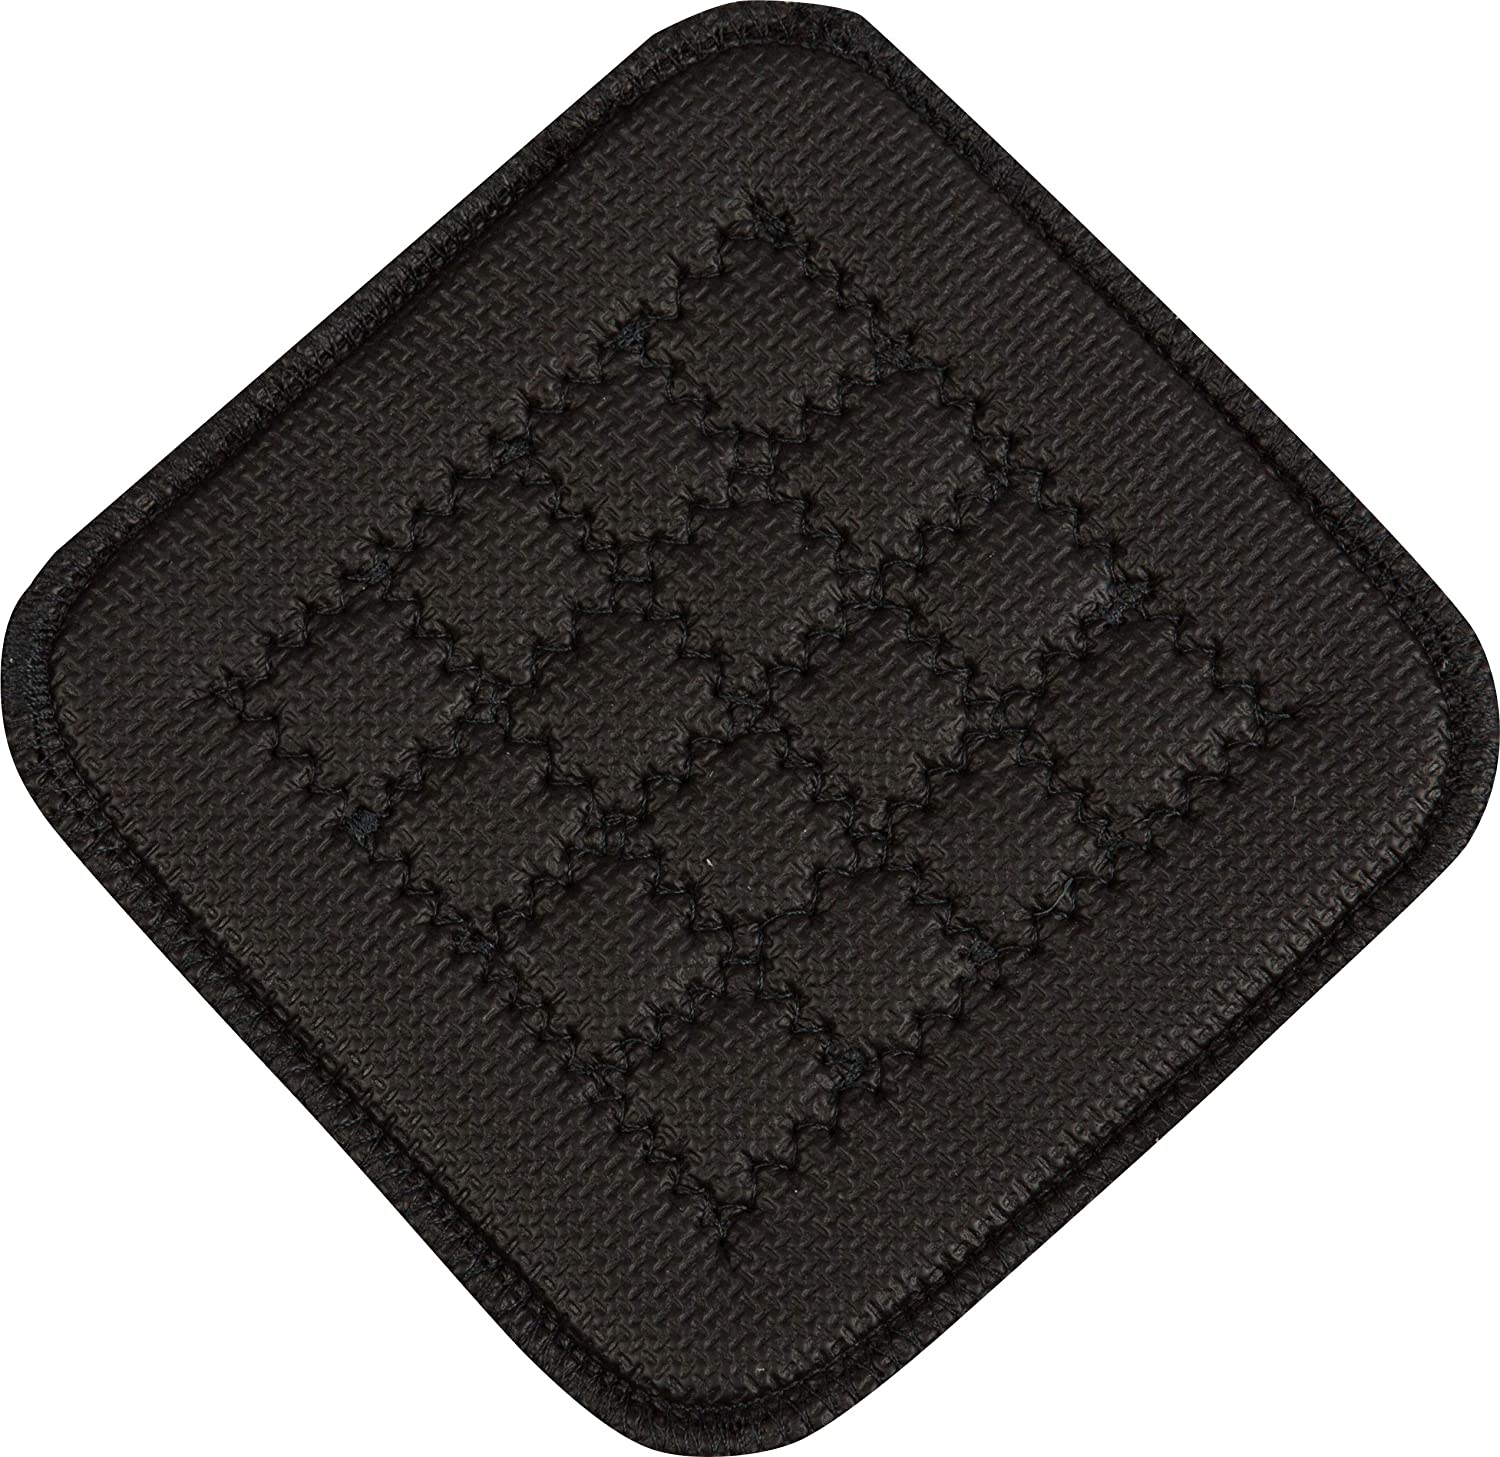 "San Jamar UHP77BK Ultigrip Square Commercial Hot Pad Pan Holder, 7"" X 7"", Black: Industrial & Scientific"